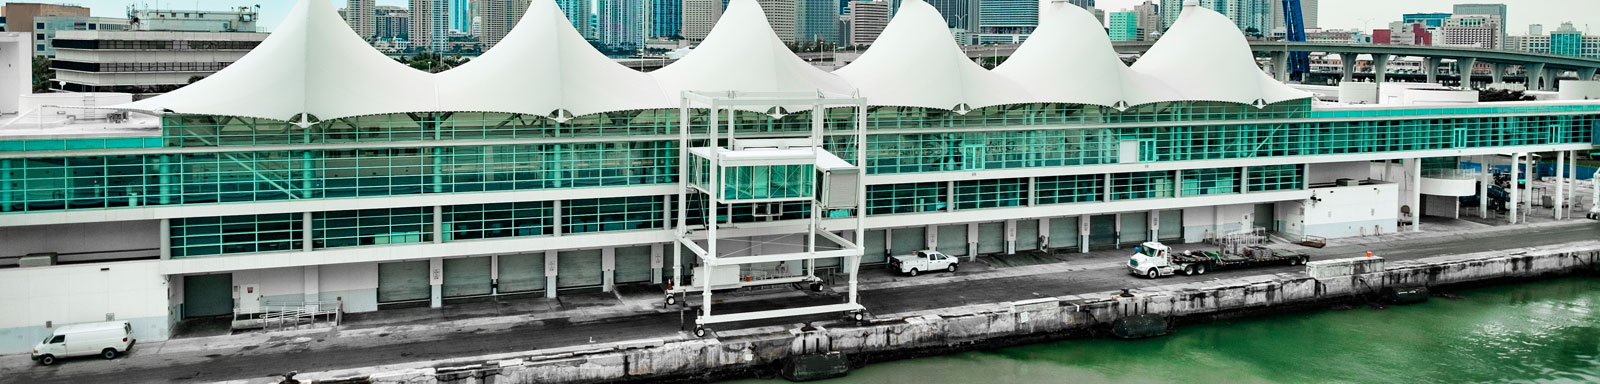 Port of Miami Cruise Ship Terminal in Florida